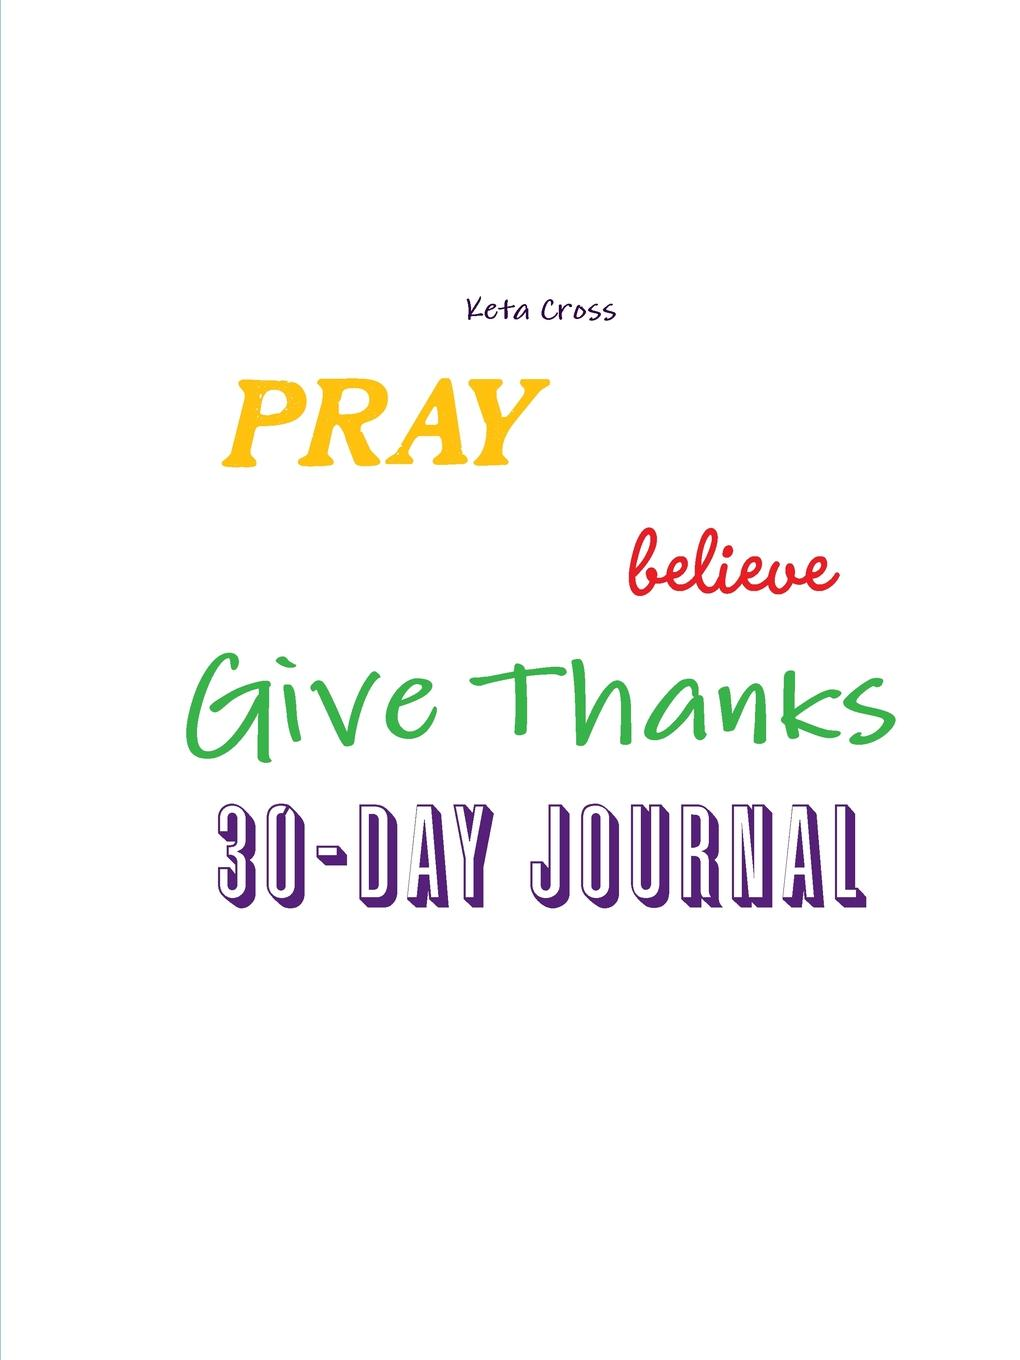 Keta Cross Pray, Believe, . Give Thanks 30 day Journal sabrina l o rourke super succinct and satiating scripture prayers and poems